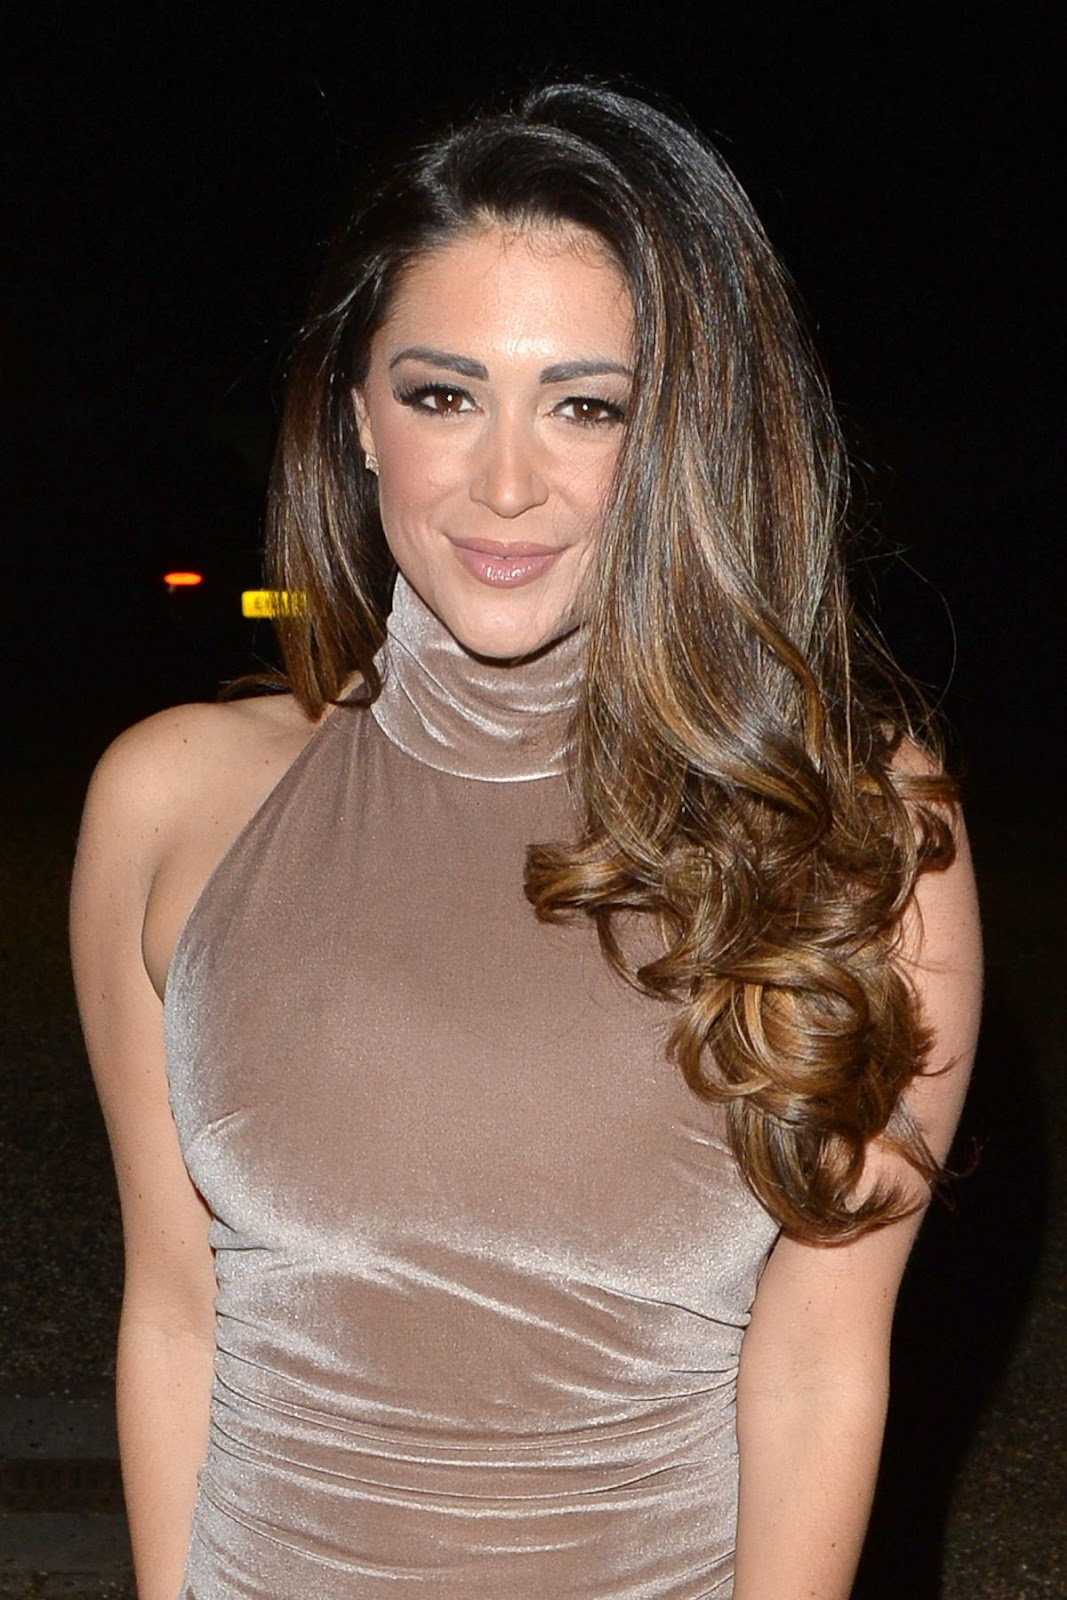 HD Photos of Casey Batchelor At Tewin Farm Hotel In Welwyn Garden City